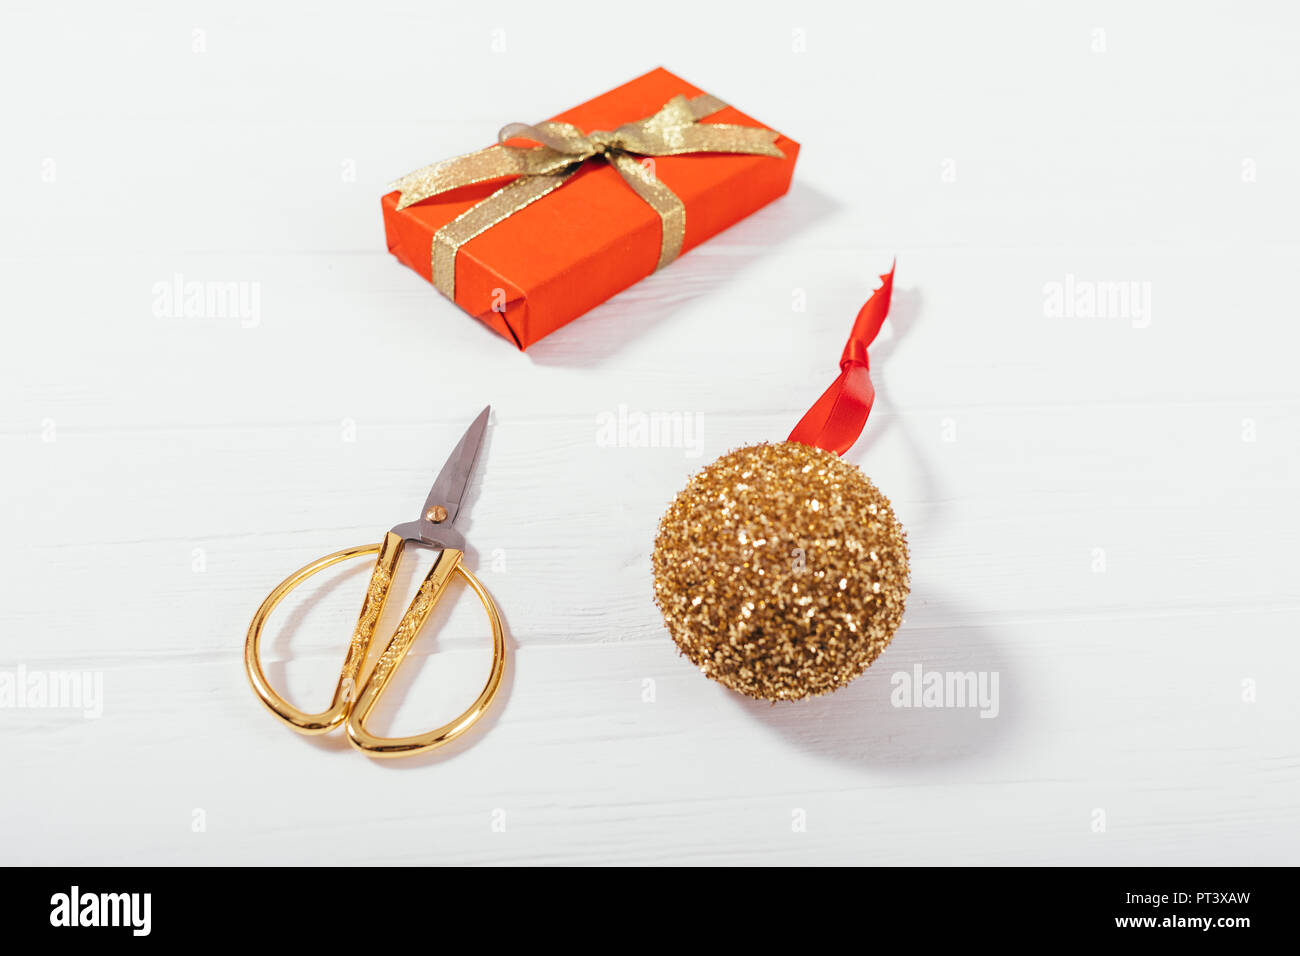 Close-up gold Christmas ball, scissors and red gift box on white wooden table, inclined top view. Stylish flat lay composition group of items to prepa - Stock Image